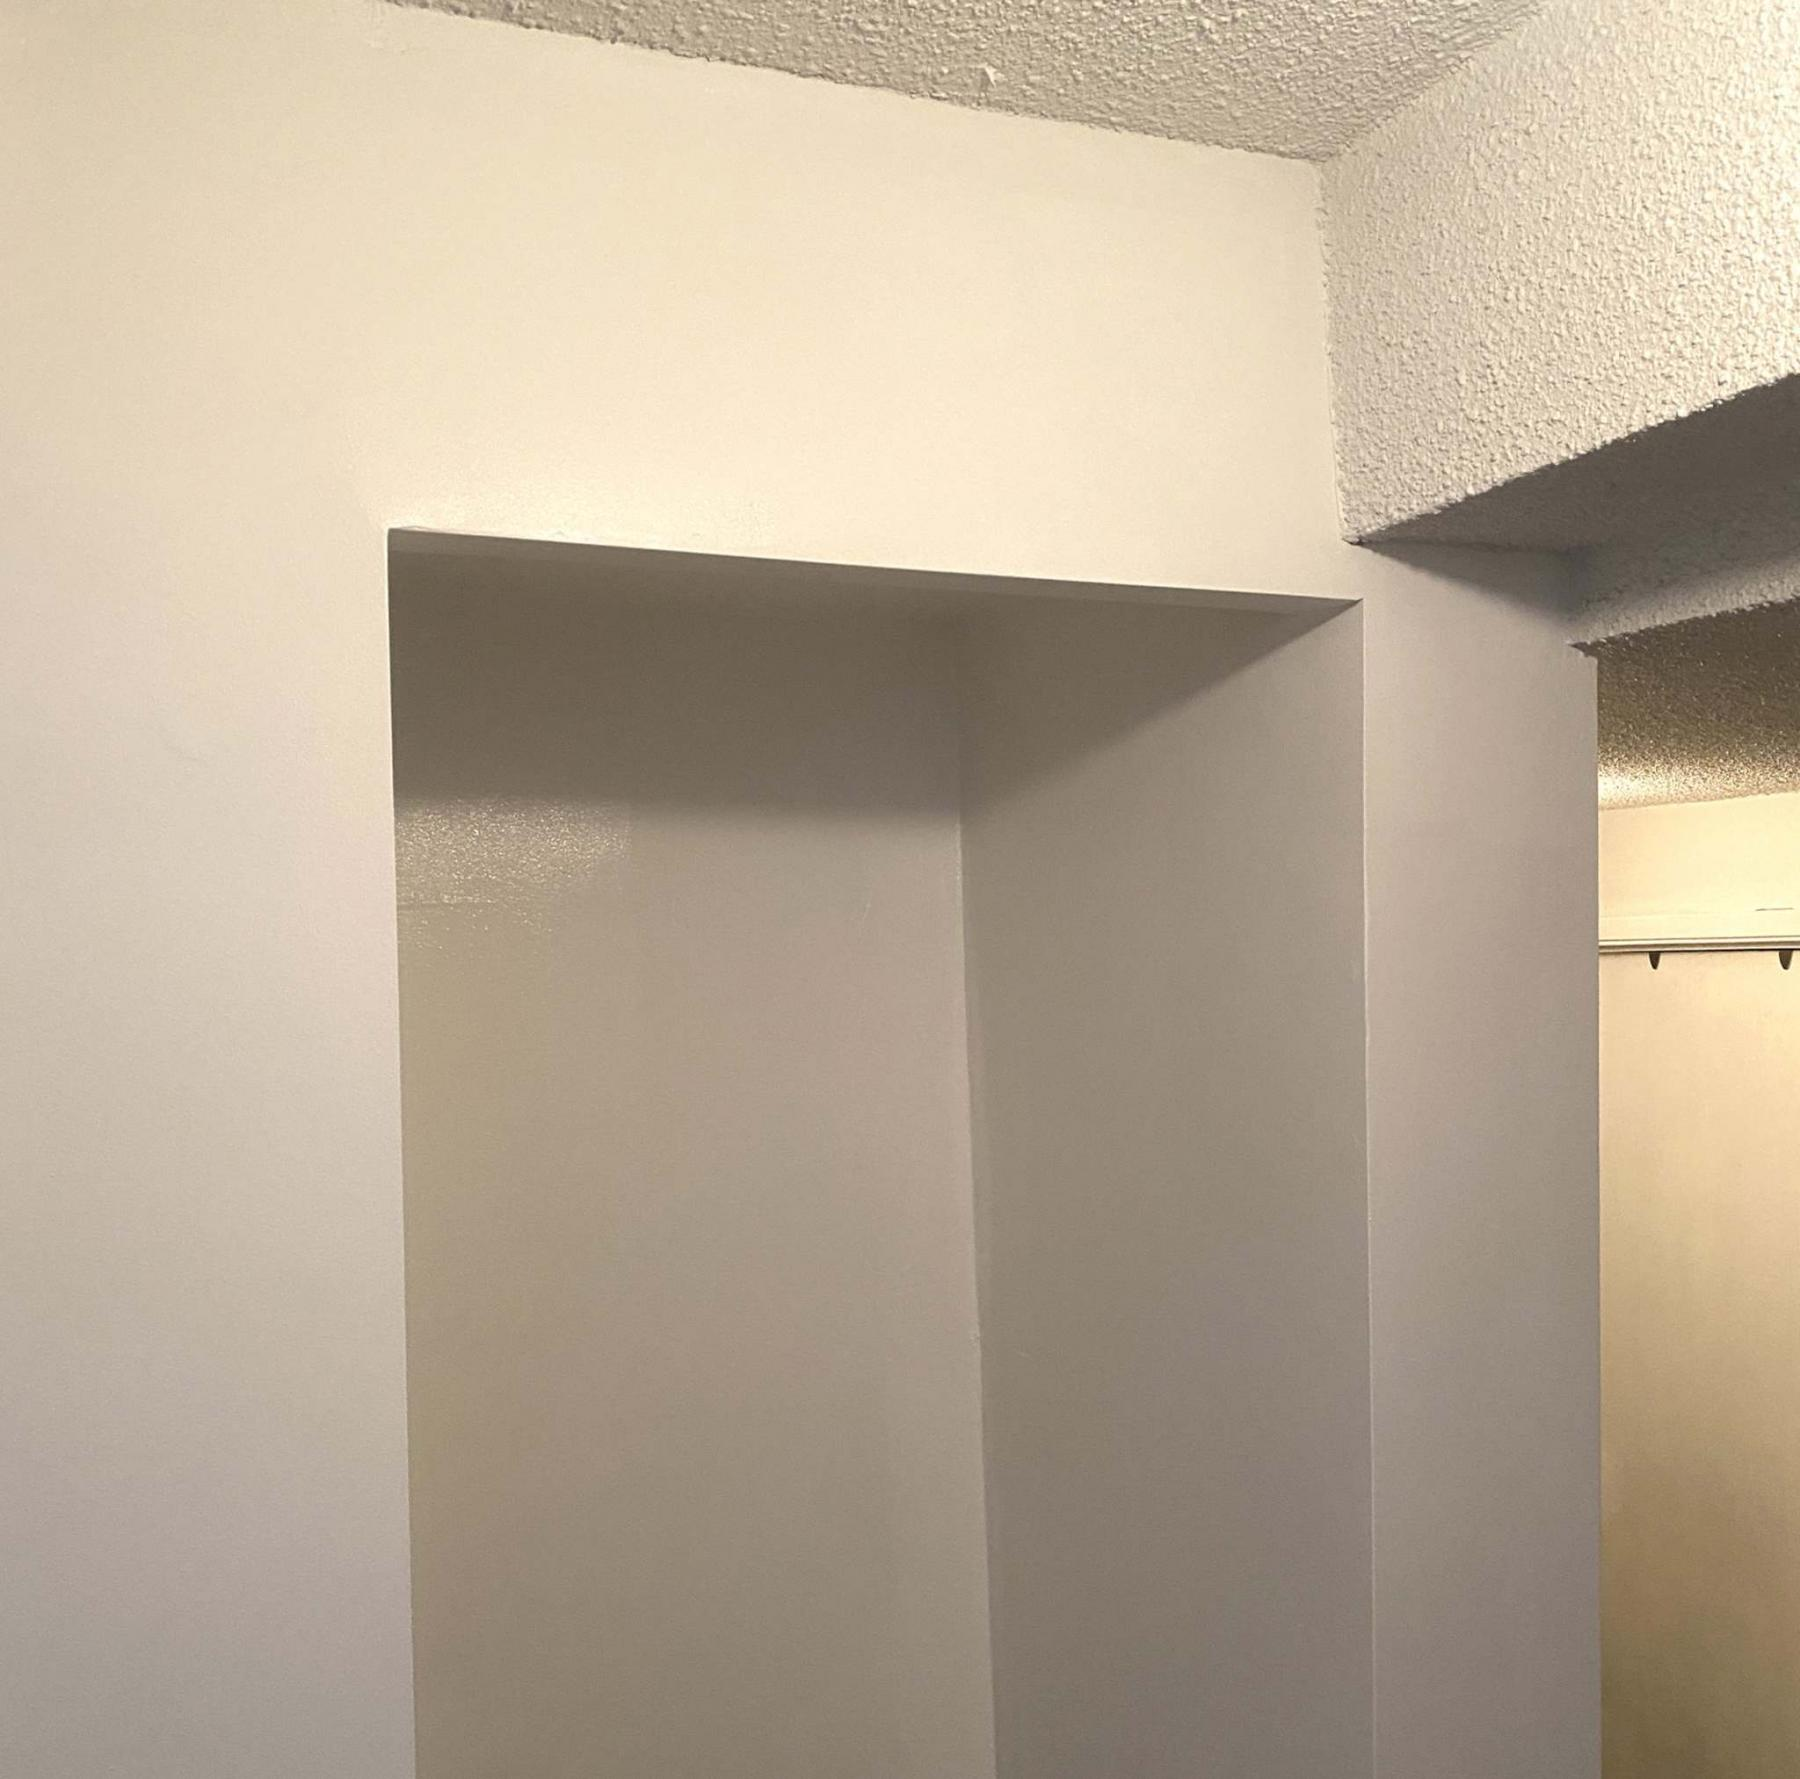 <p>A flat vertical surface was created on which the four cabinet doors could rest when closed.</p></p>